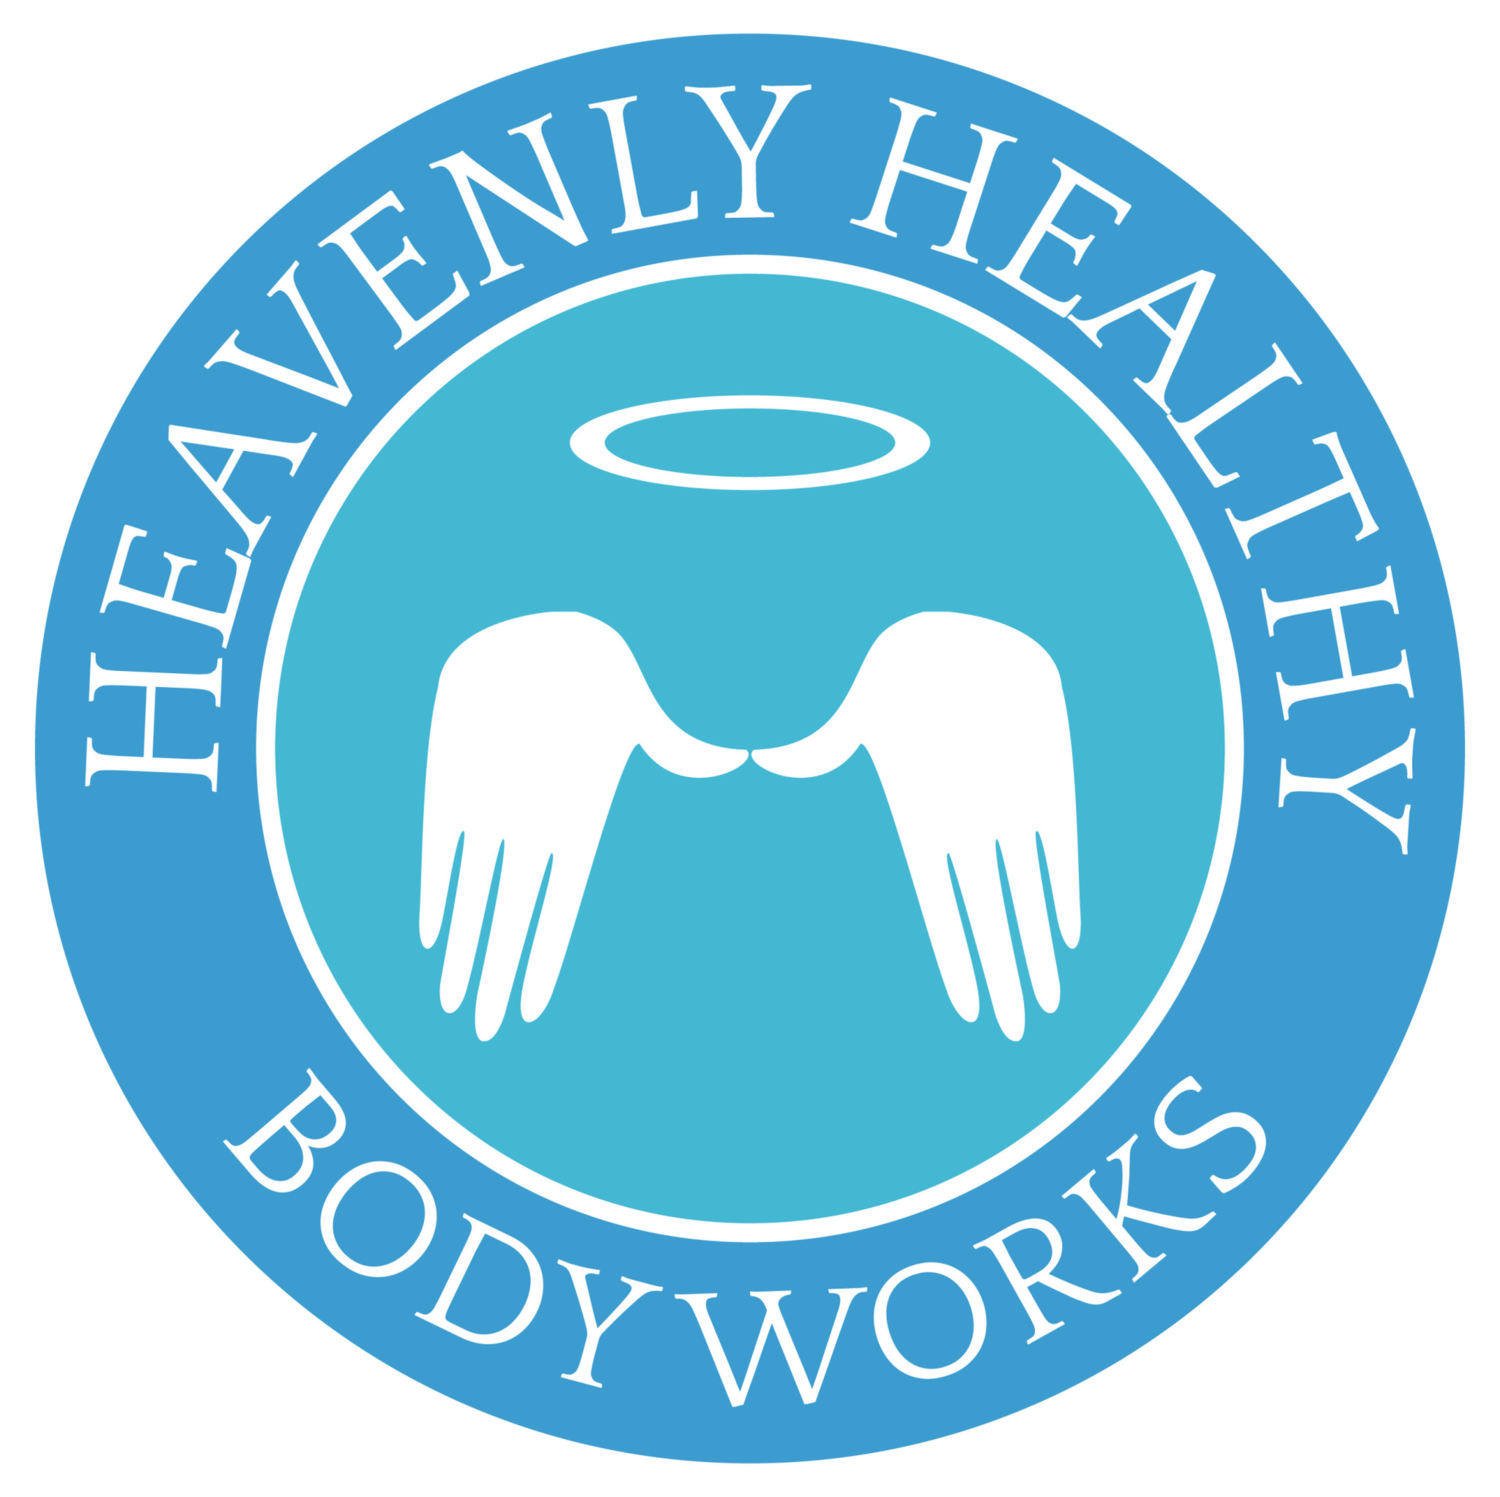 Heavenly Healthy Body Works